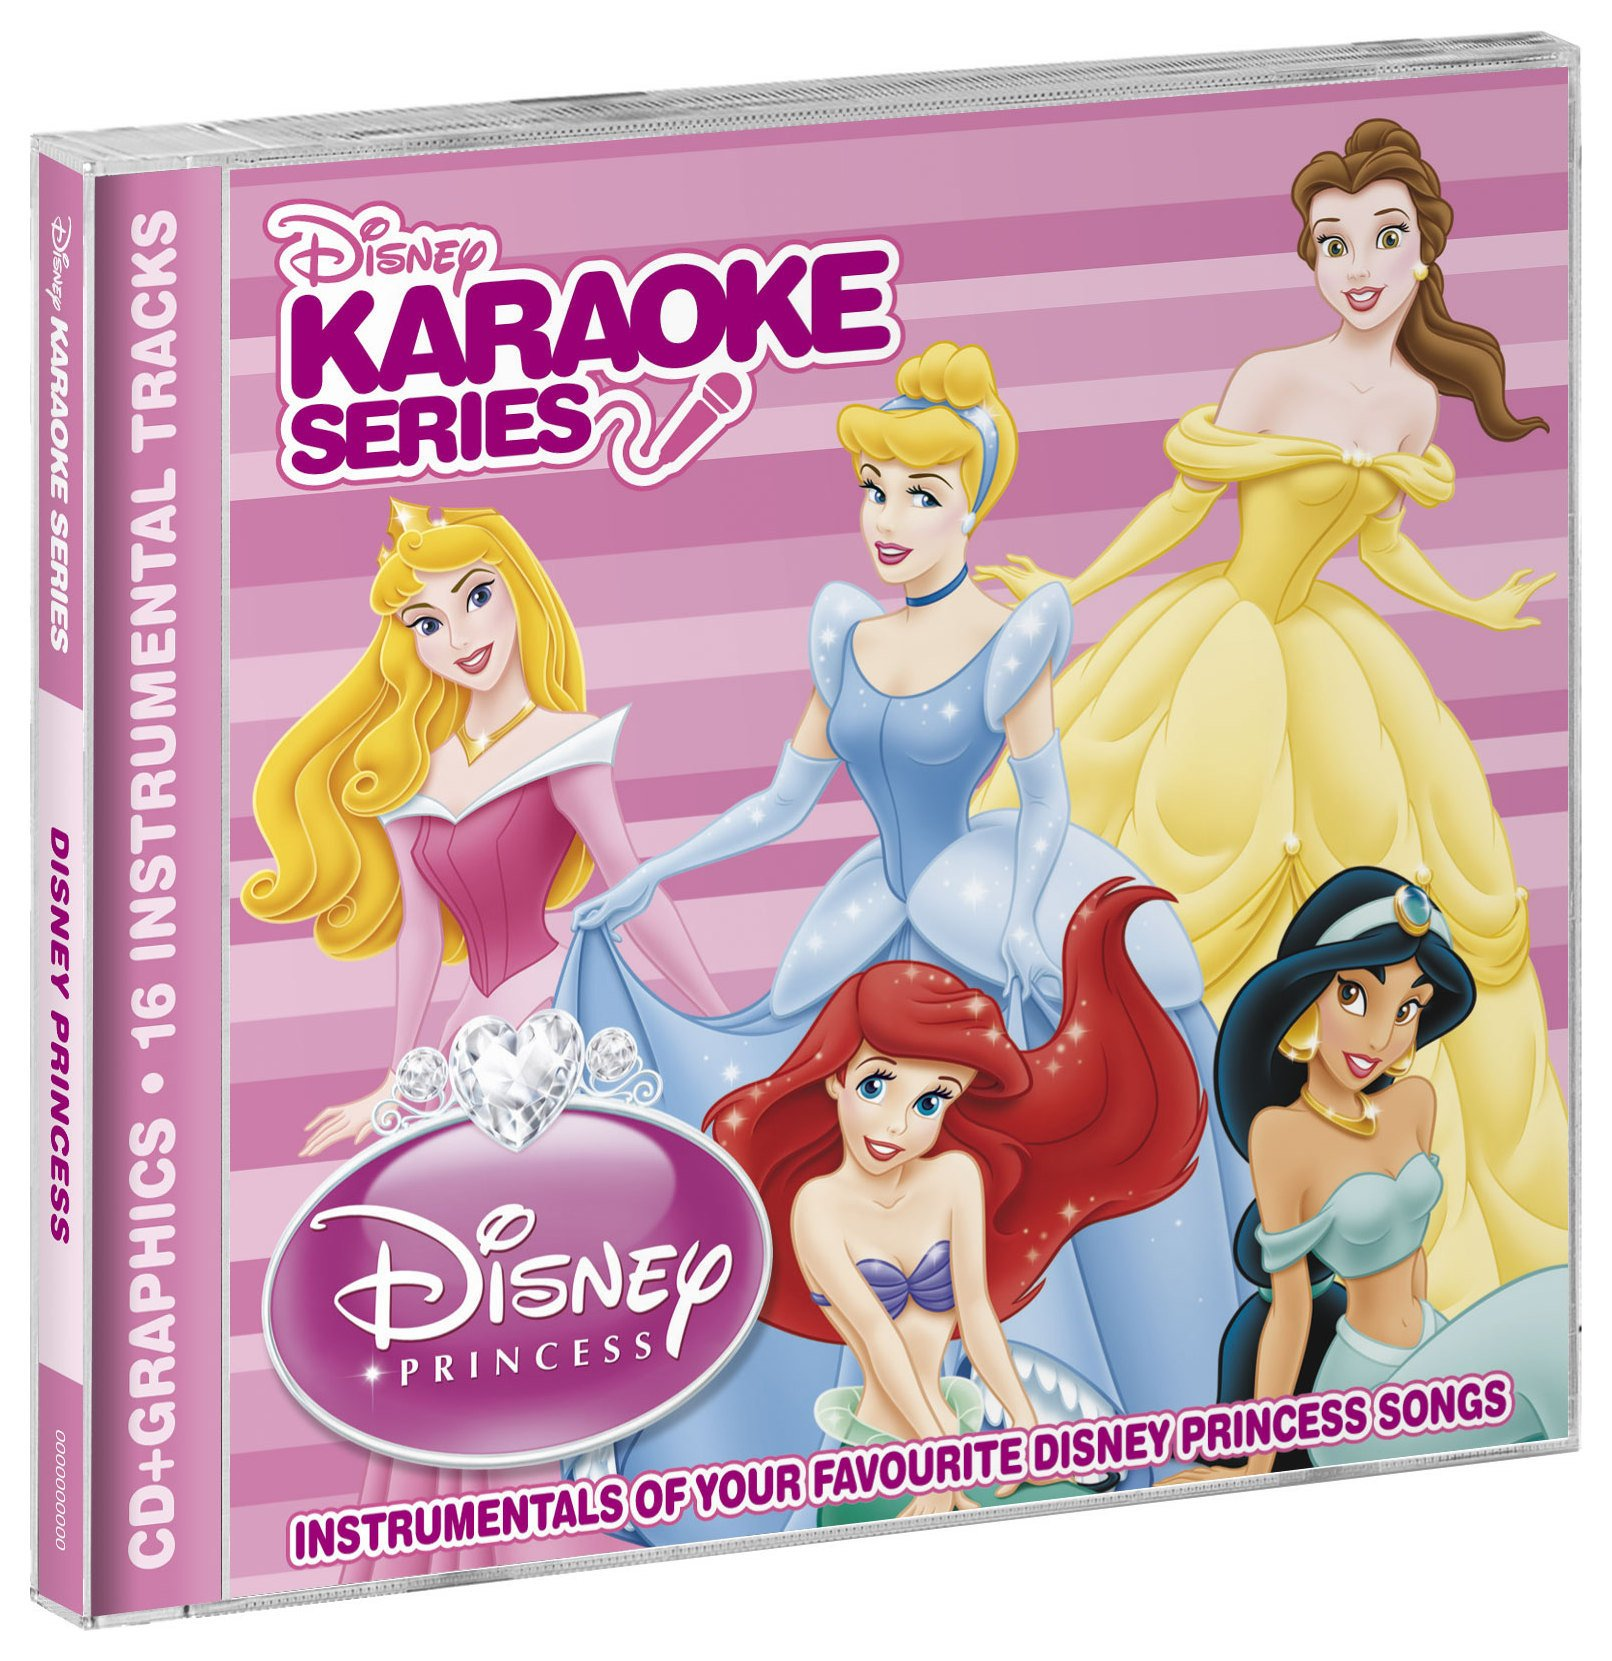 Image of Easy Karaoke - Disney Princess CD+G